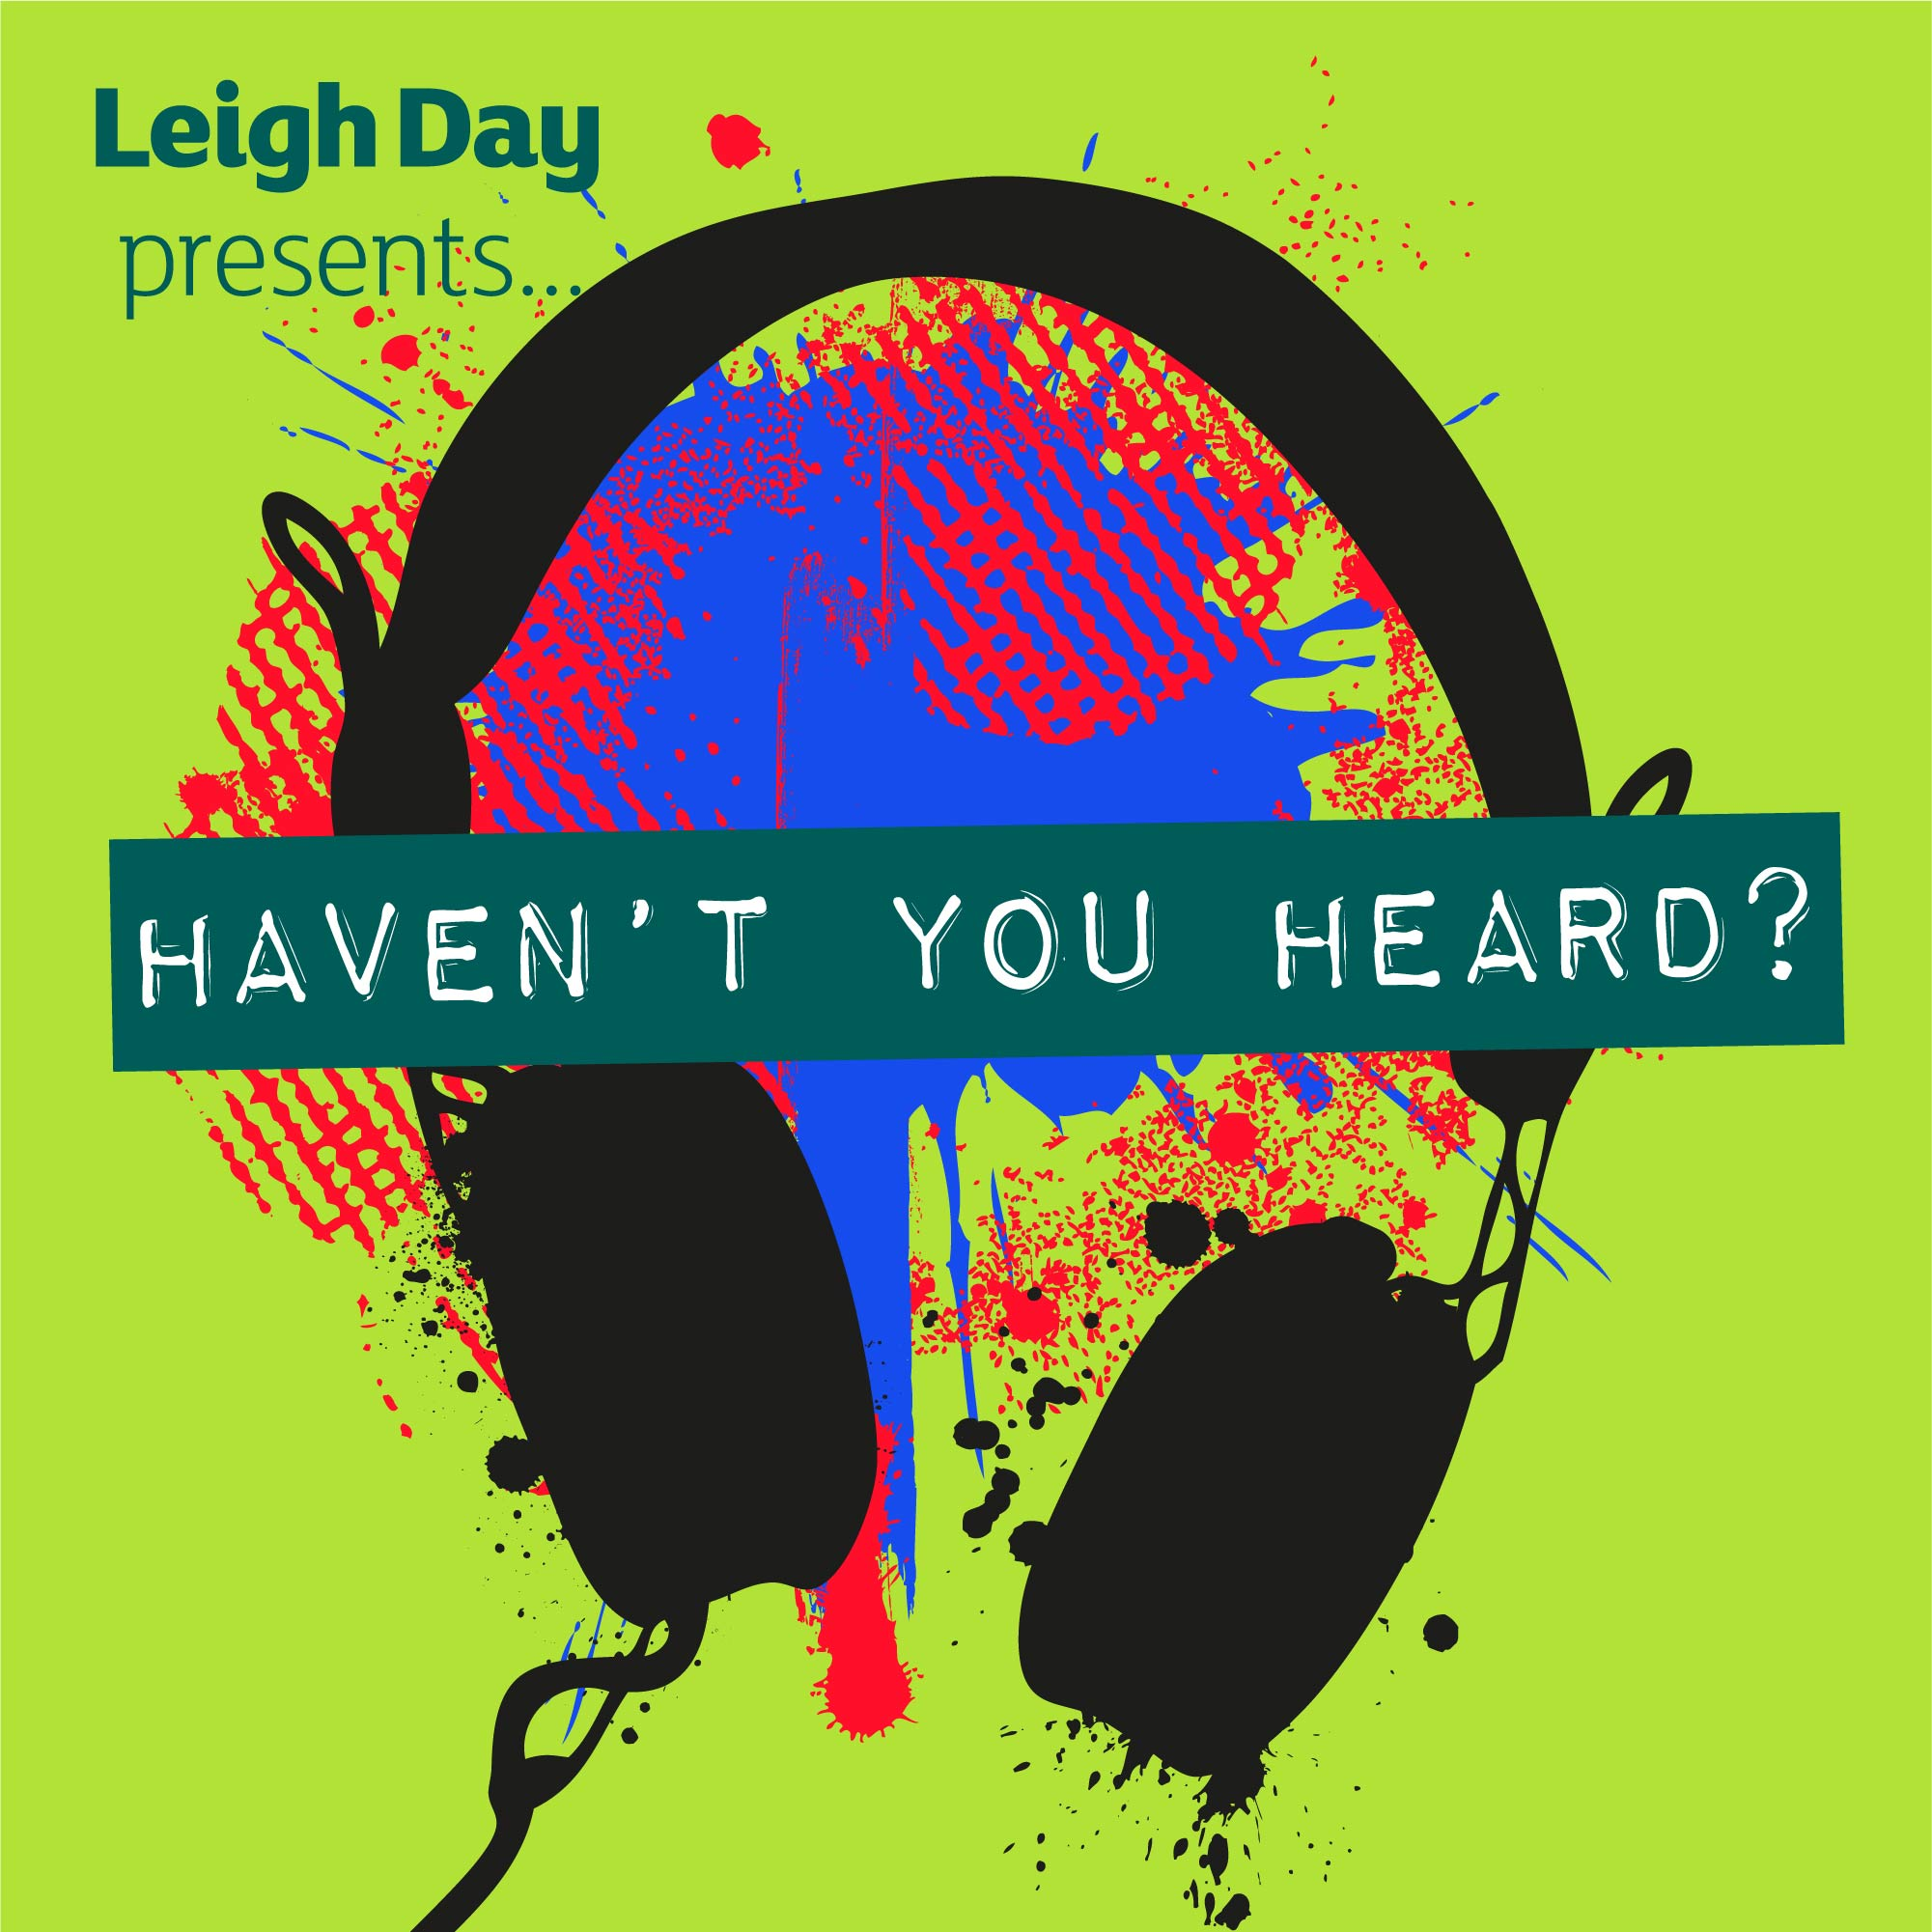 Leigh Day presents… 'Haven't you heard?'